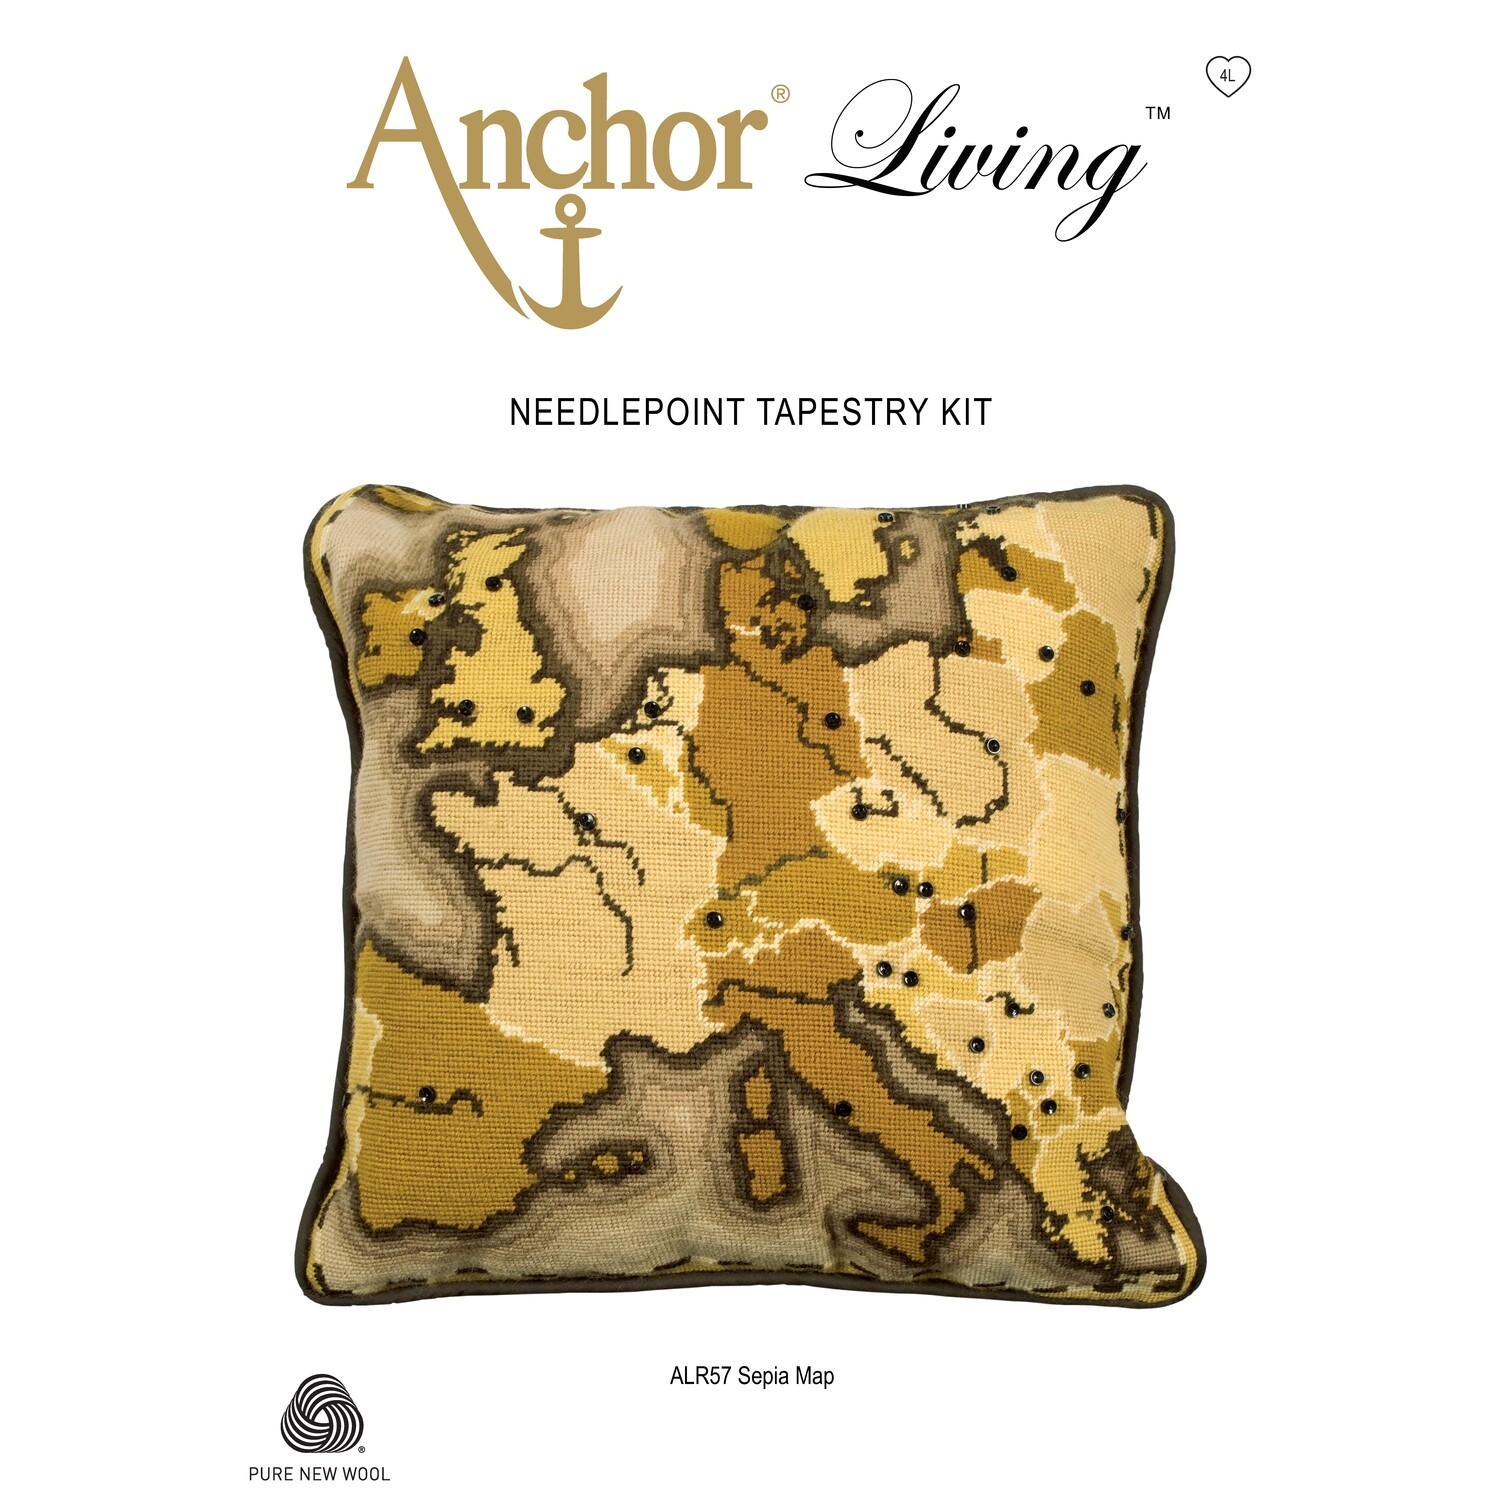 Anchor Living Kit - Tapestry Sepia Map Cushion